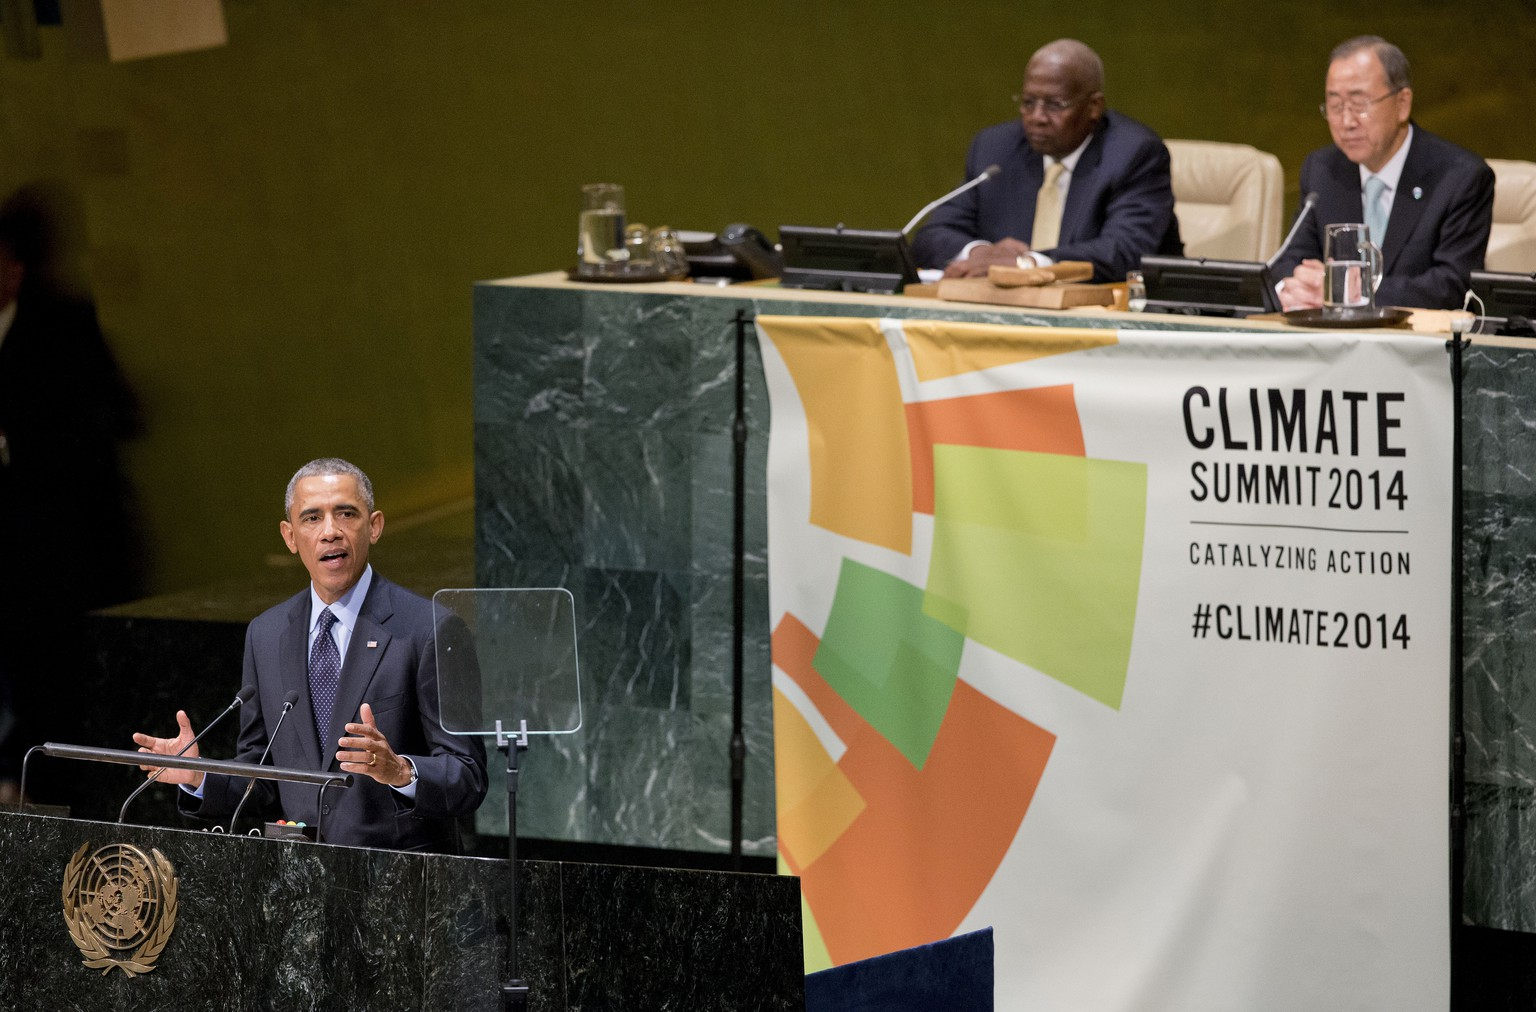 US President Barack Obama speaks at the Climate Summit 2014 at the UN General Assembly Hall, Tuesday, Sept. 23, 2014. Obama is in New York for three days of talks with foreign leaders at the annual United Nations General Assembly. On the far right look on is United Nations Secretary-General Ban Ki-moon. (AP Photo/Pablo Martinez Monsivais)